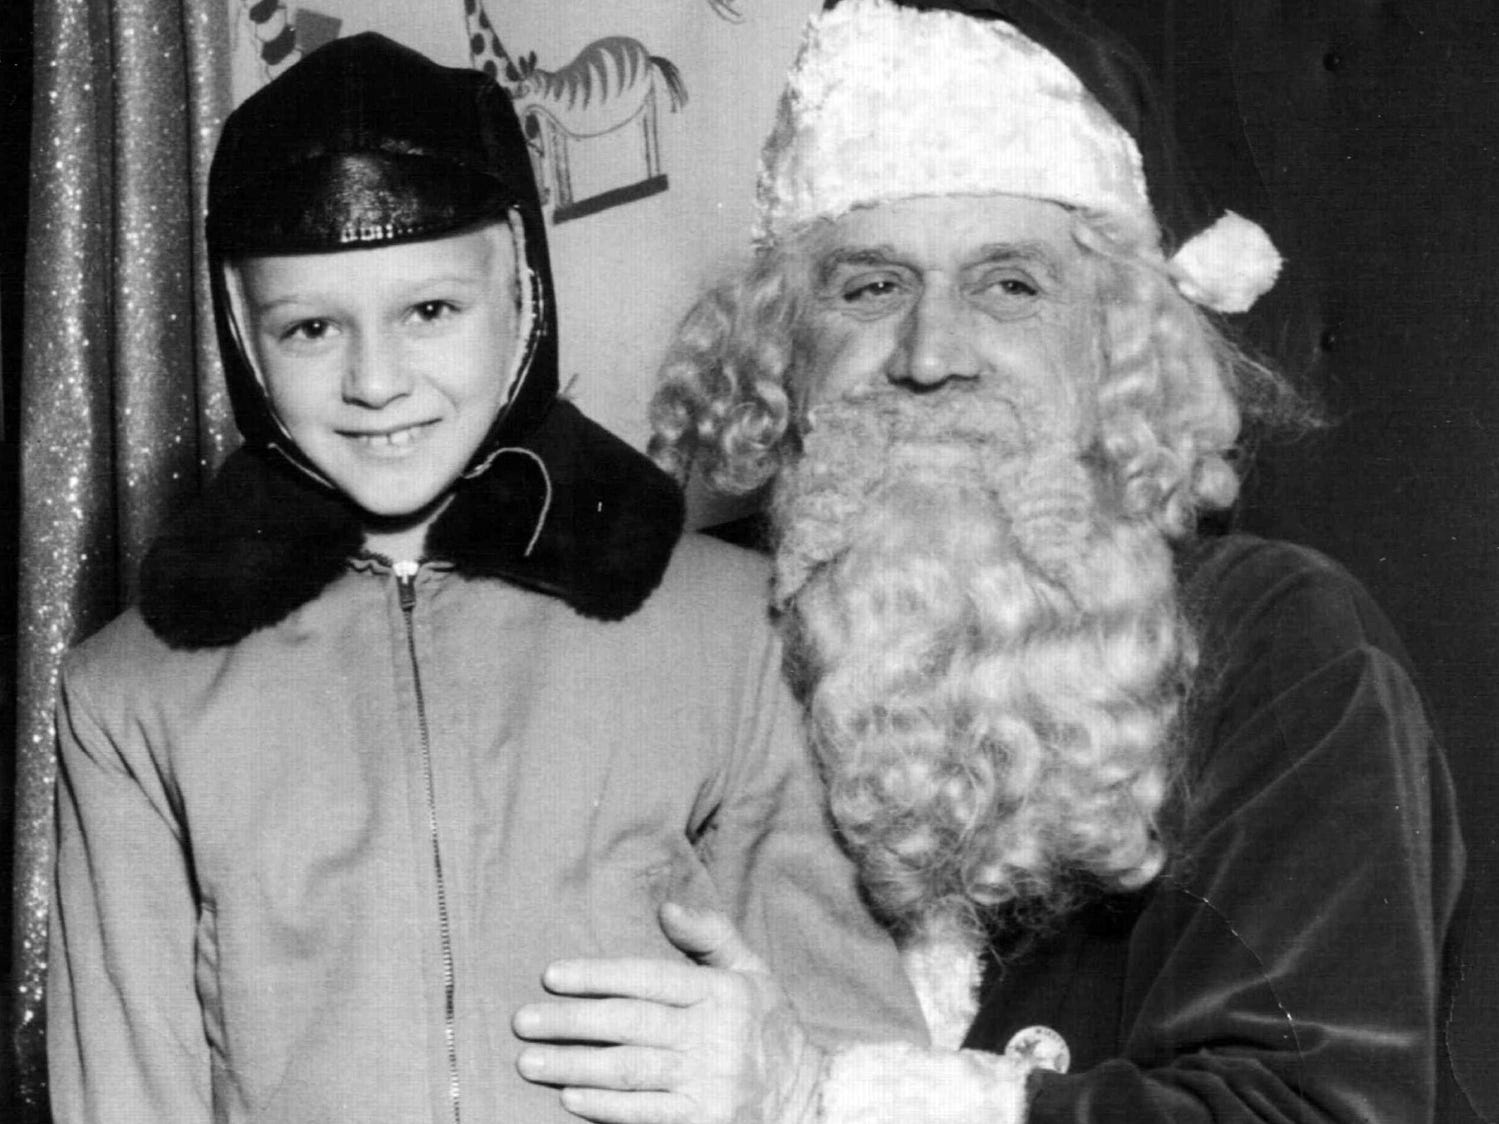 submitted  David K. Klinedinst, then 6, visits with Santa at The Bon-Ton in York in 1946. Klinedinst now lives in Springettsbury Township with his wife, Bonita L. (Dietz) Klinedinst.